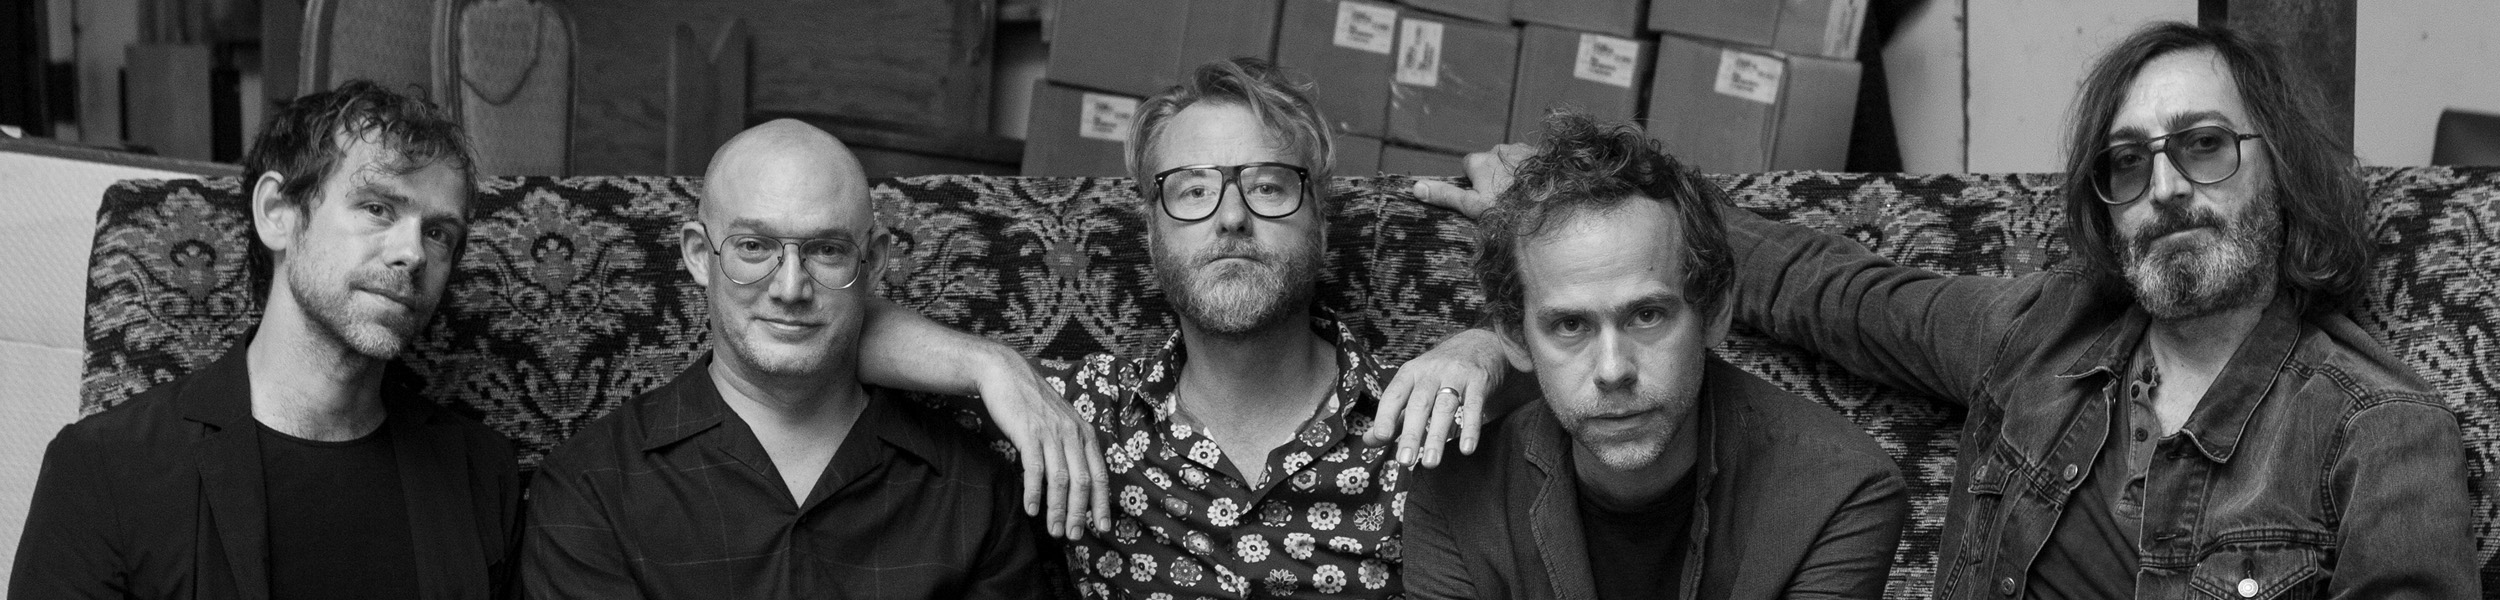 The National - Release Video For 'I'll Still Destroy You'